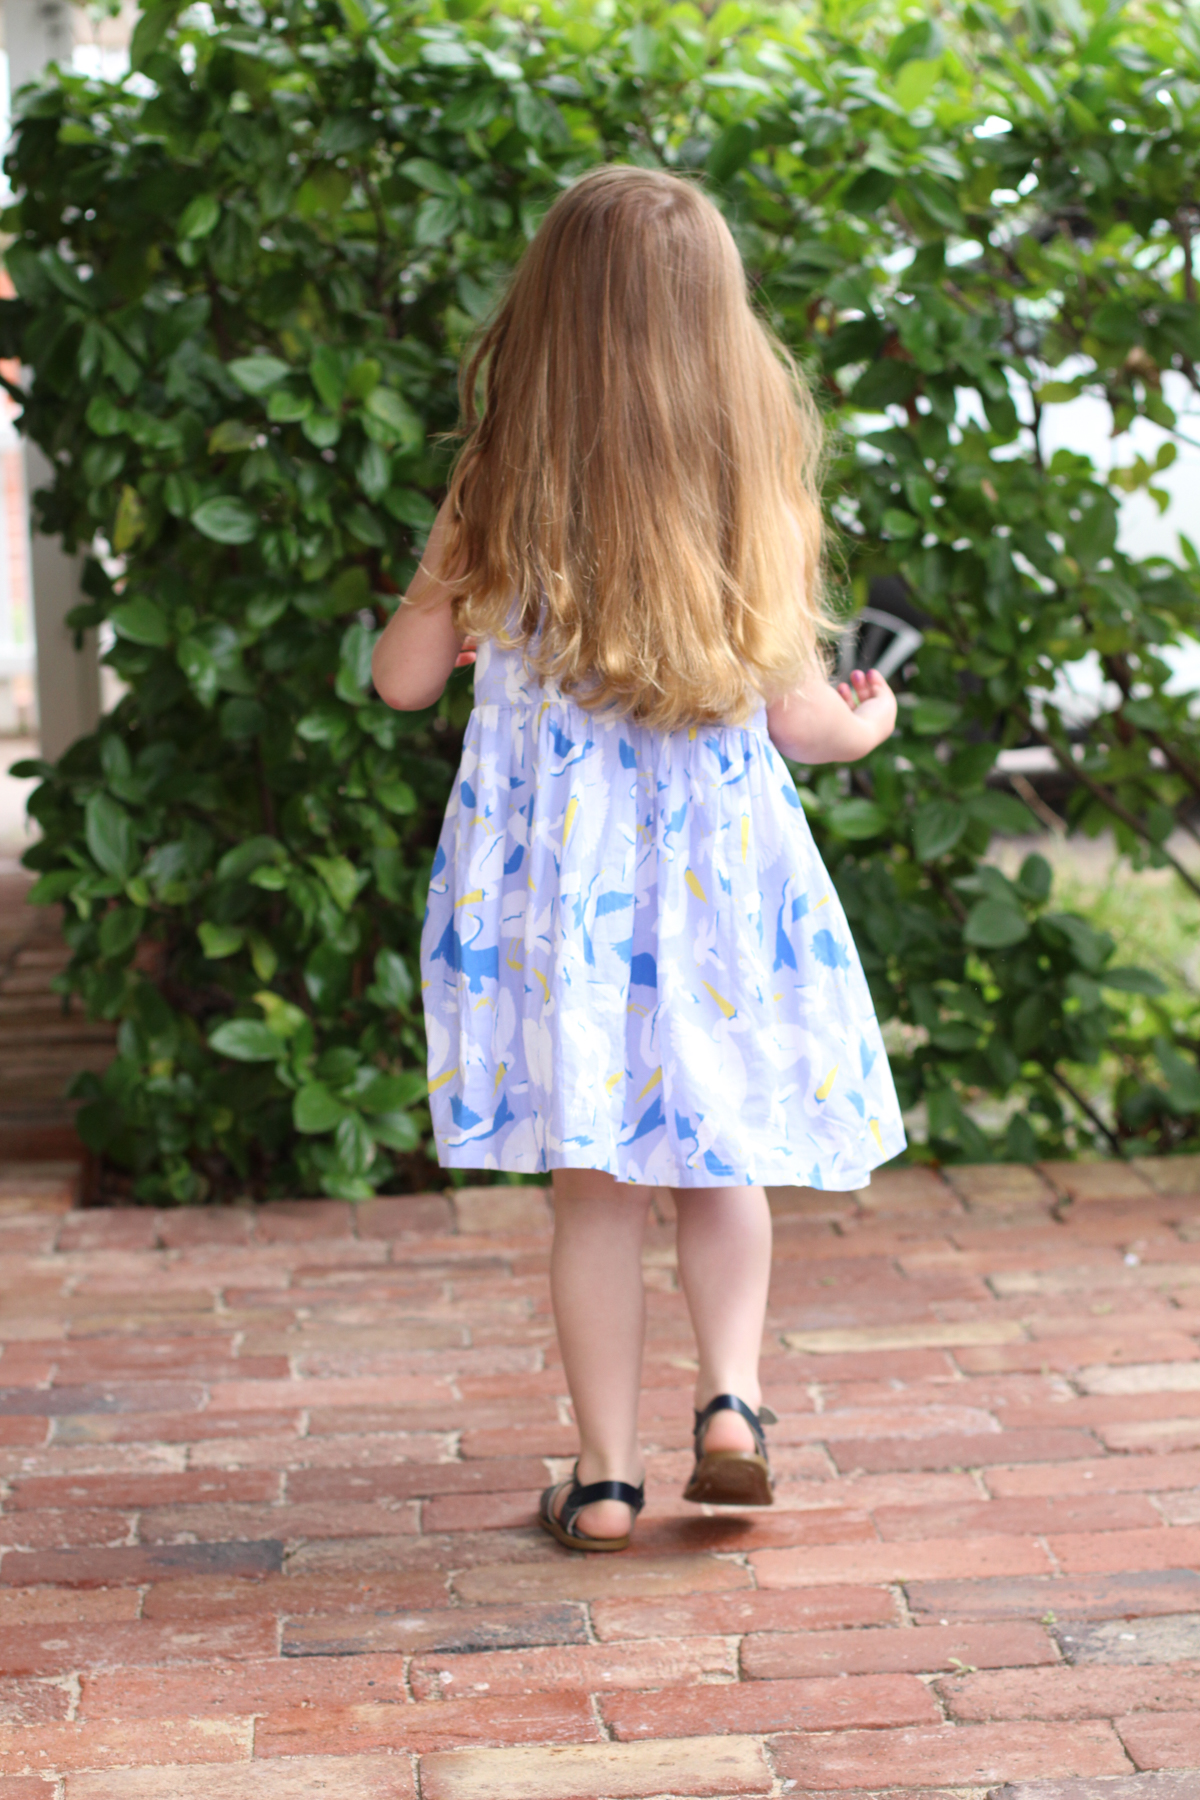 Birdie's Mini Eucalypt Dress Hack in Ellie Whittaker Seabirds fabric! // Megan Nielsen Design Diary